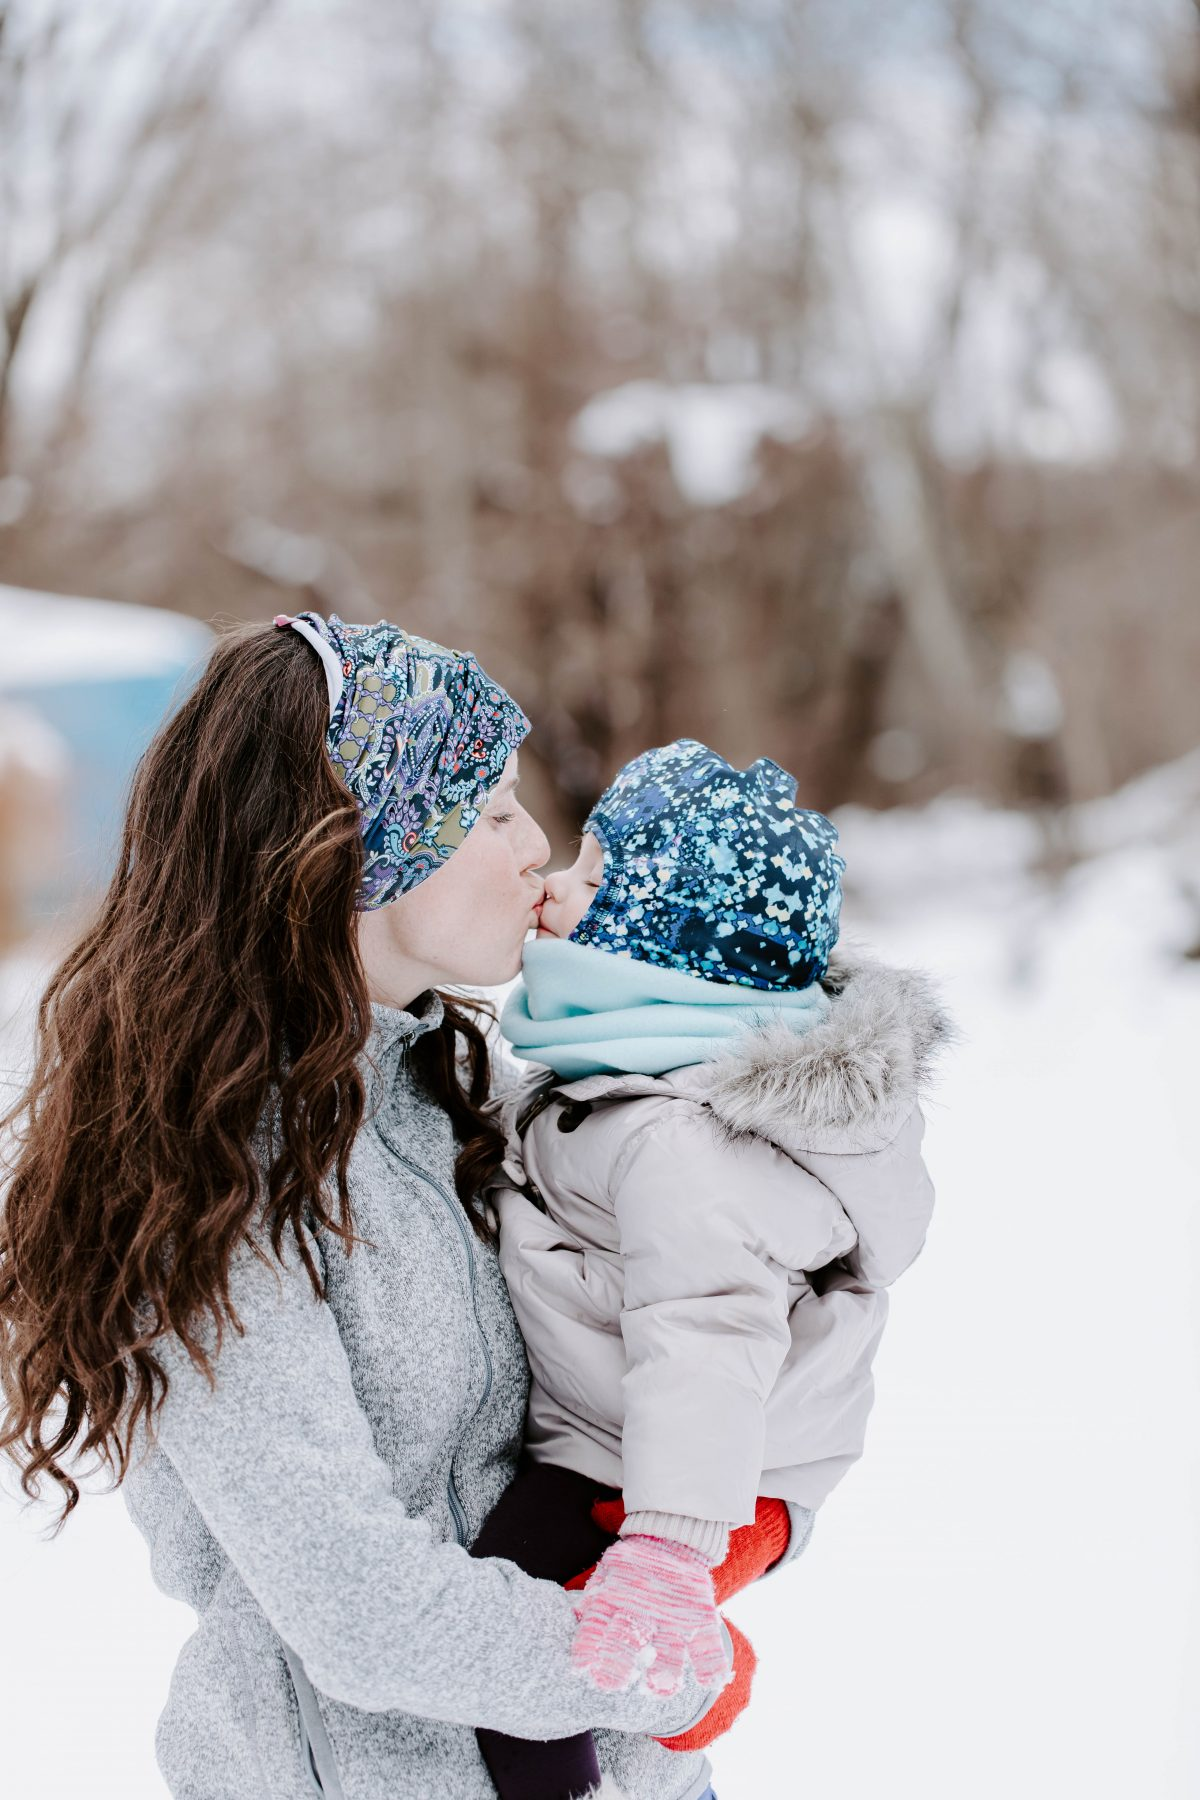 Mom wearing snow headband kissing baby wearing snow hat